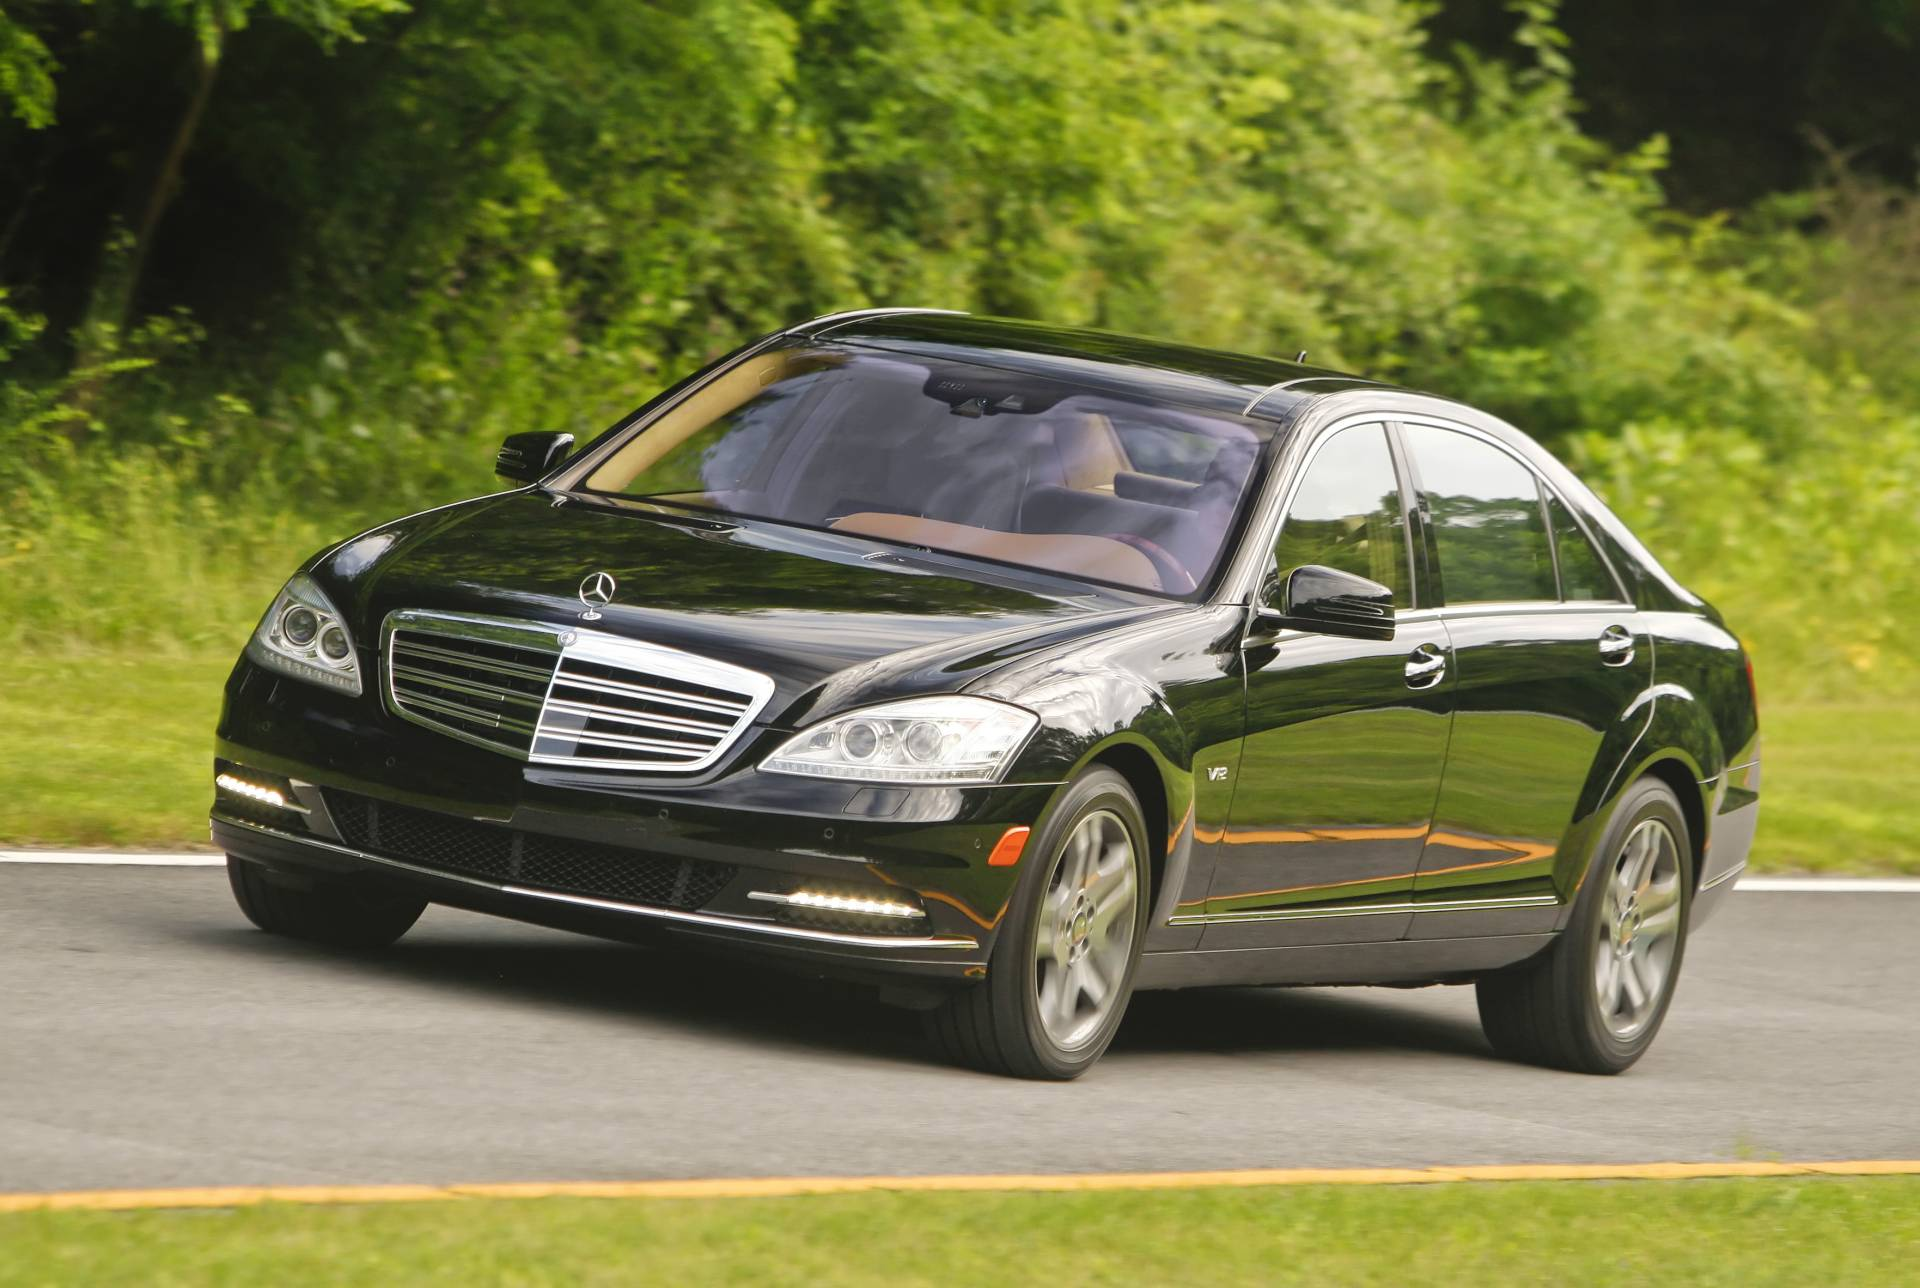 Toyota Of Pullman >> 2013 Mercedes-Benz S600 News and Information